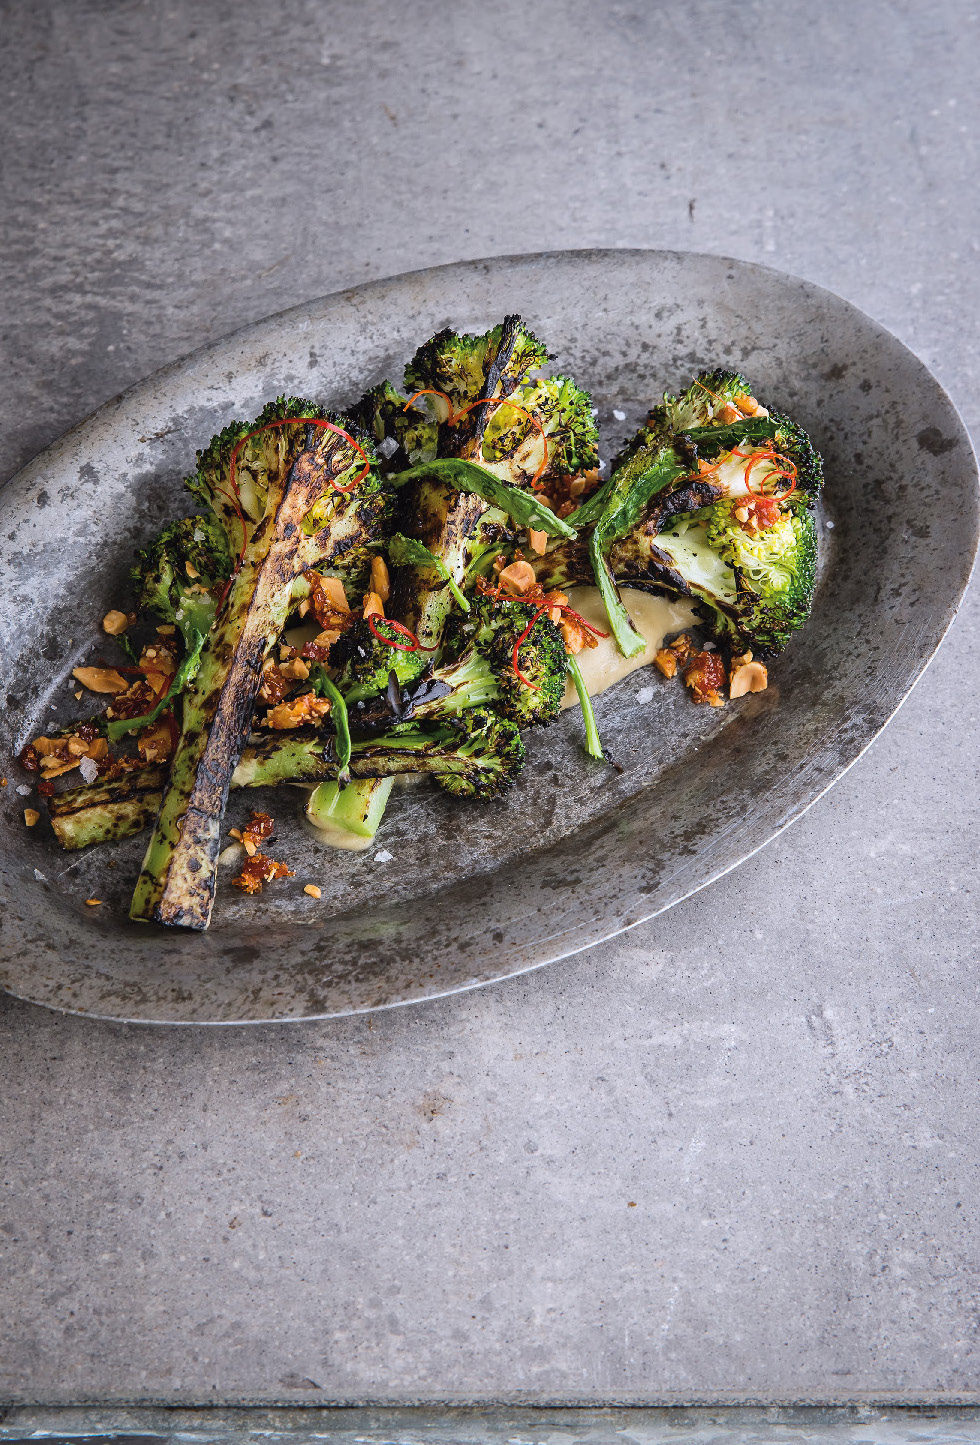 Broccoli, eggplant, fermented chilli brittle